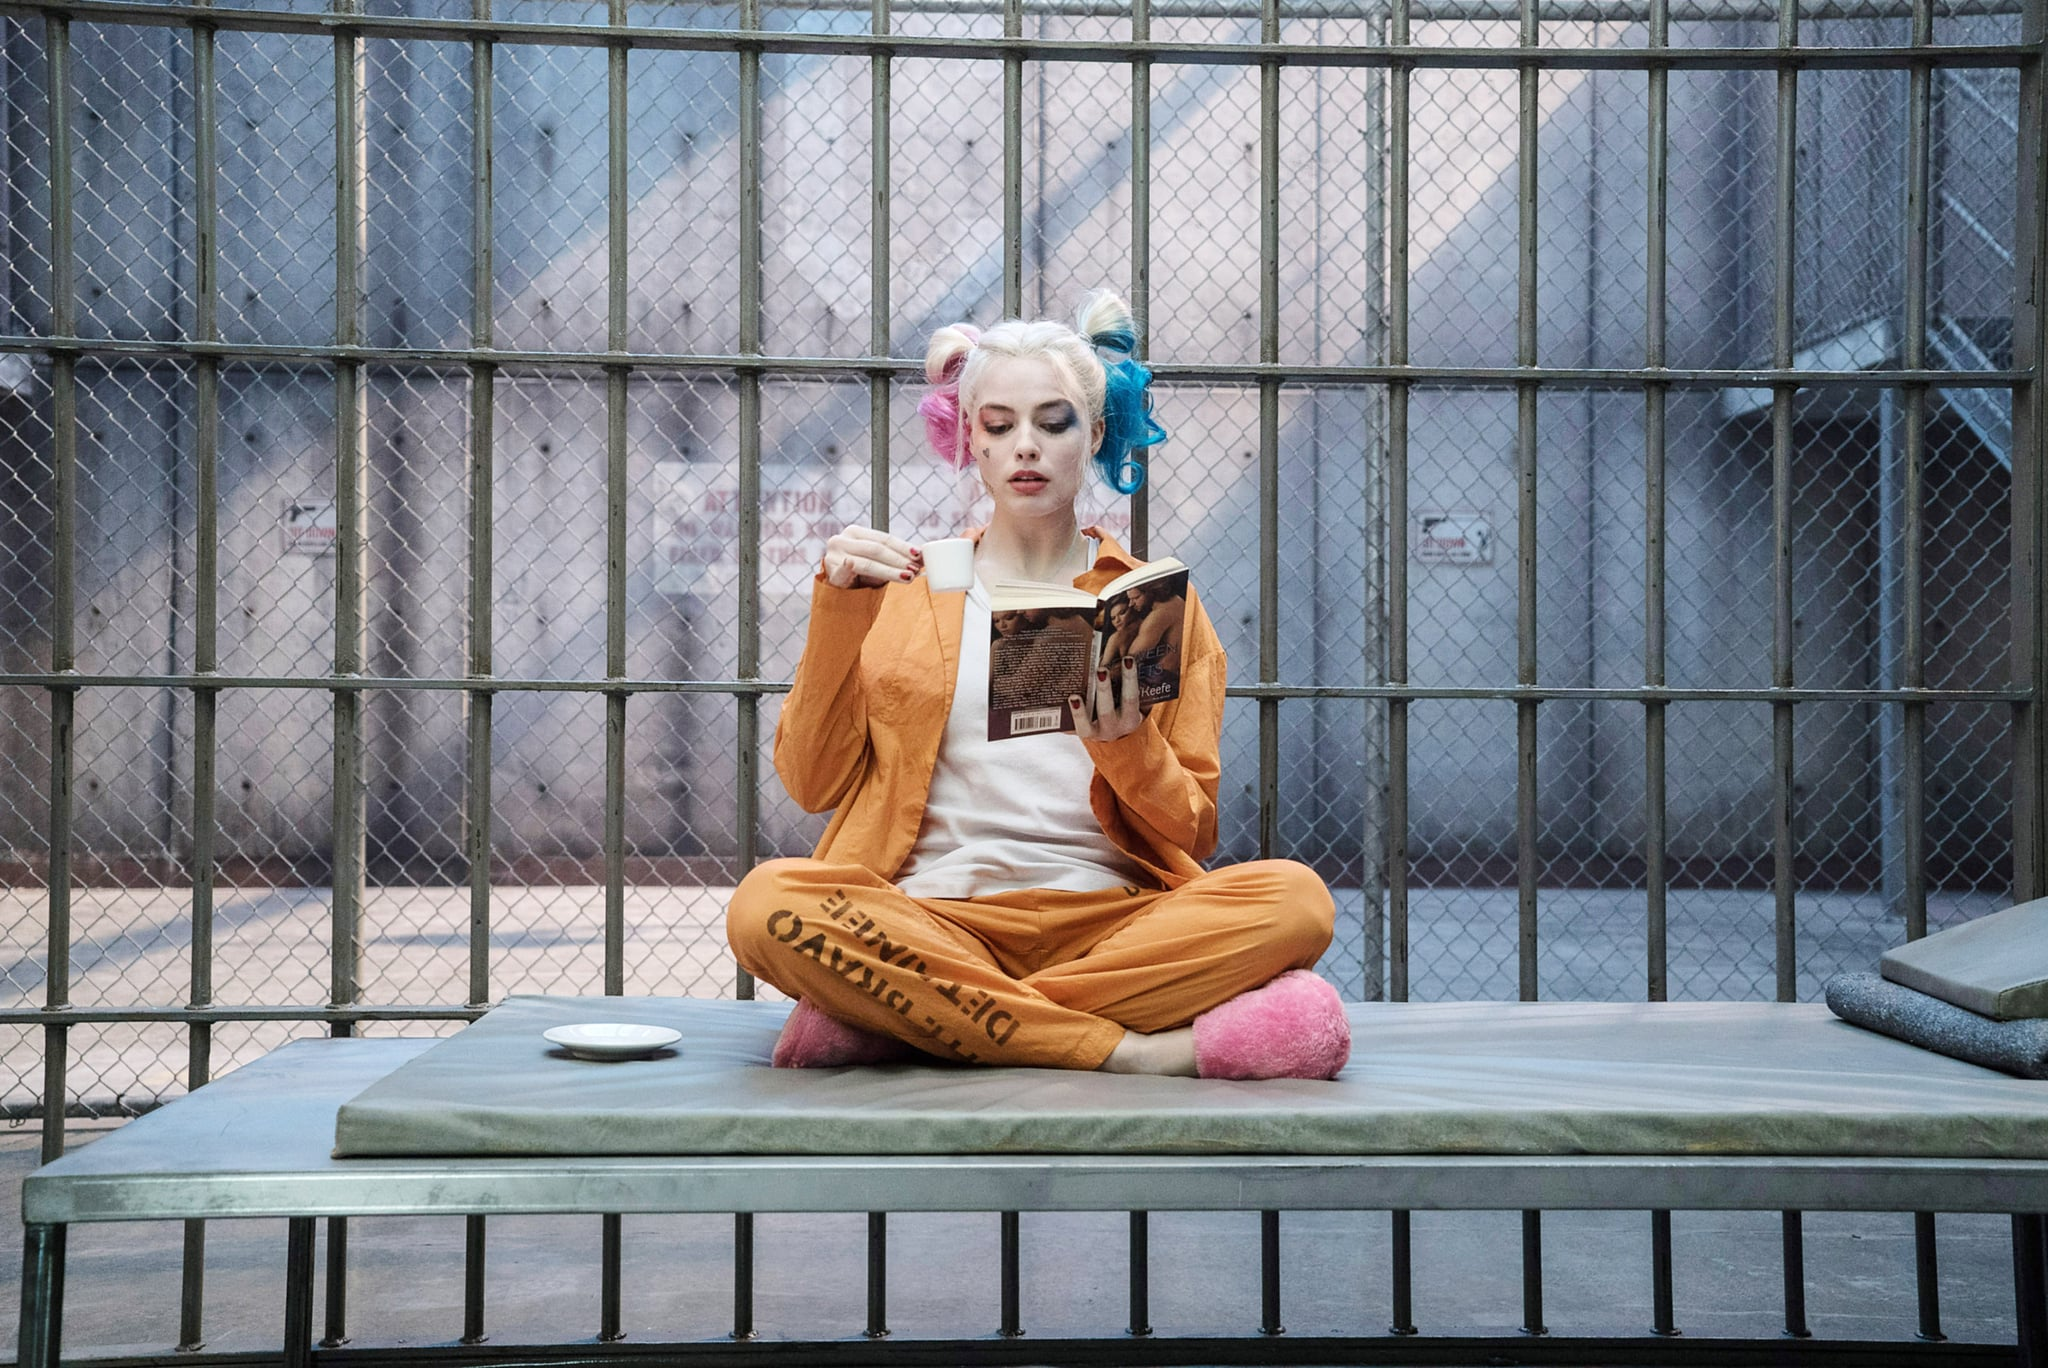 SUICIDE SQUAD, Margot Robbie, 2016. ph: Clay Enos /  Warner Bros. /Courtesy Everett Collection